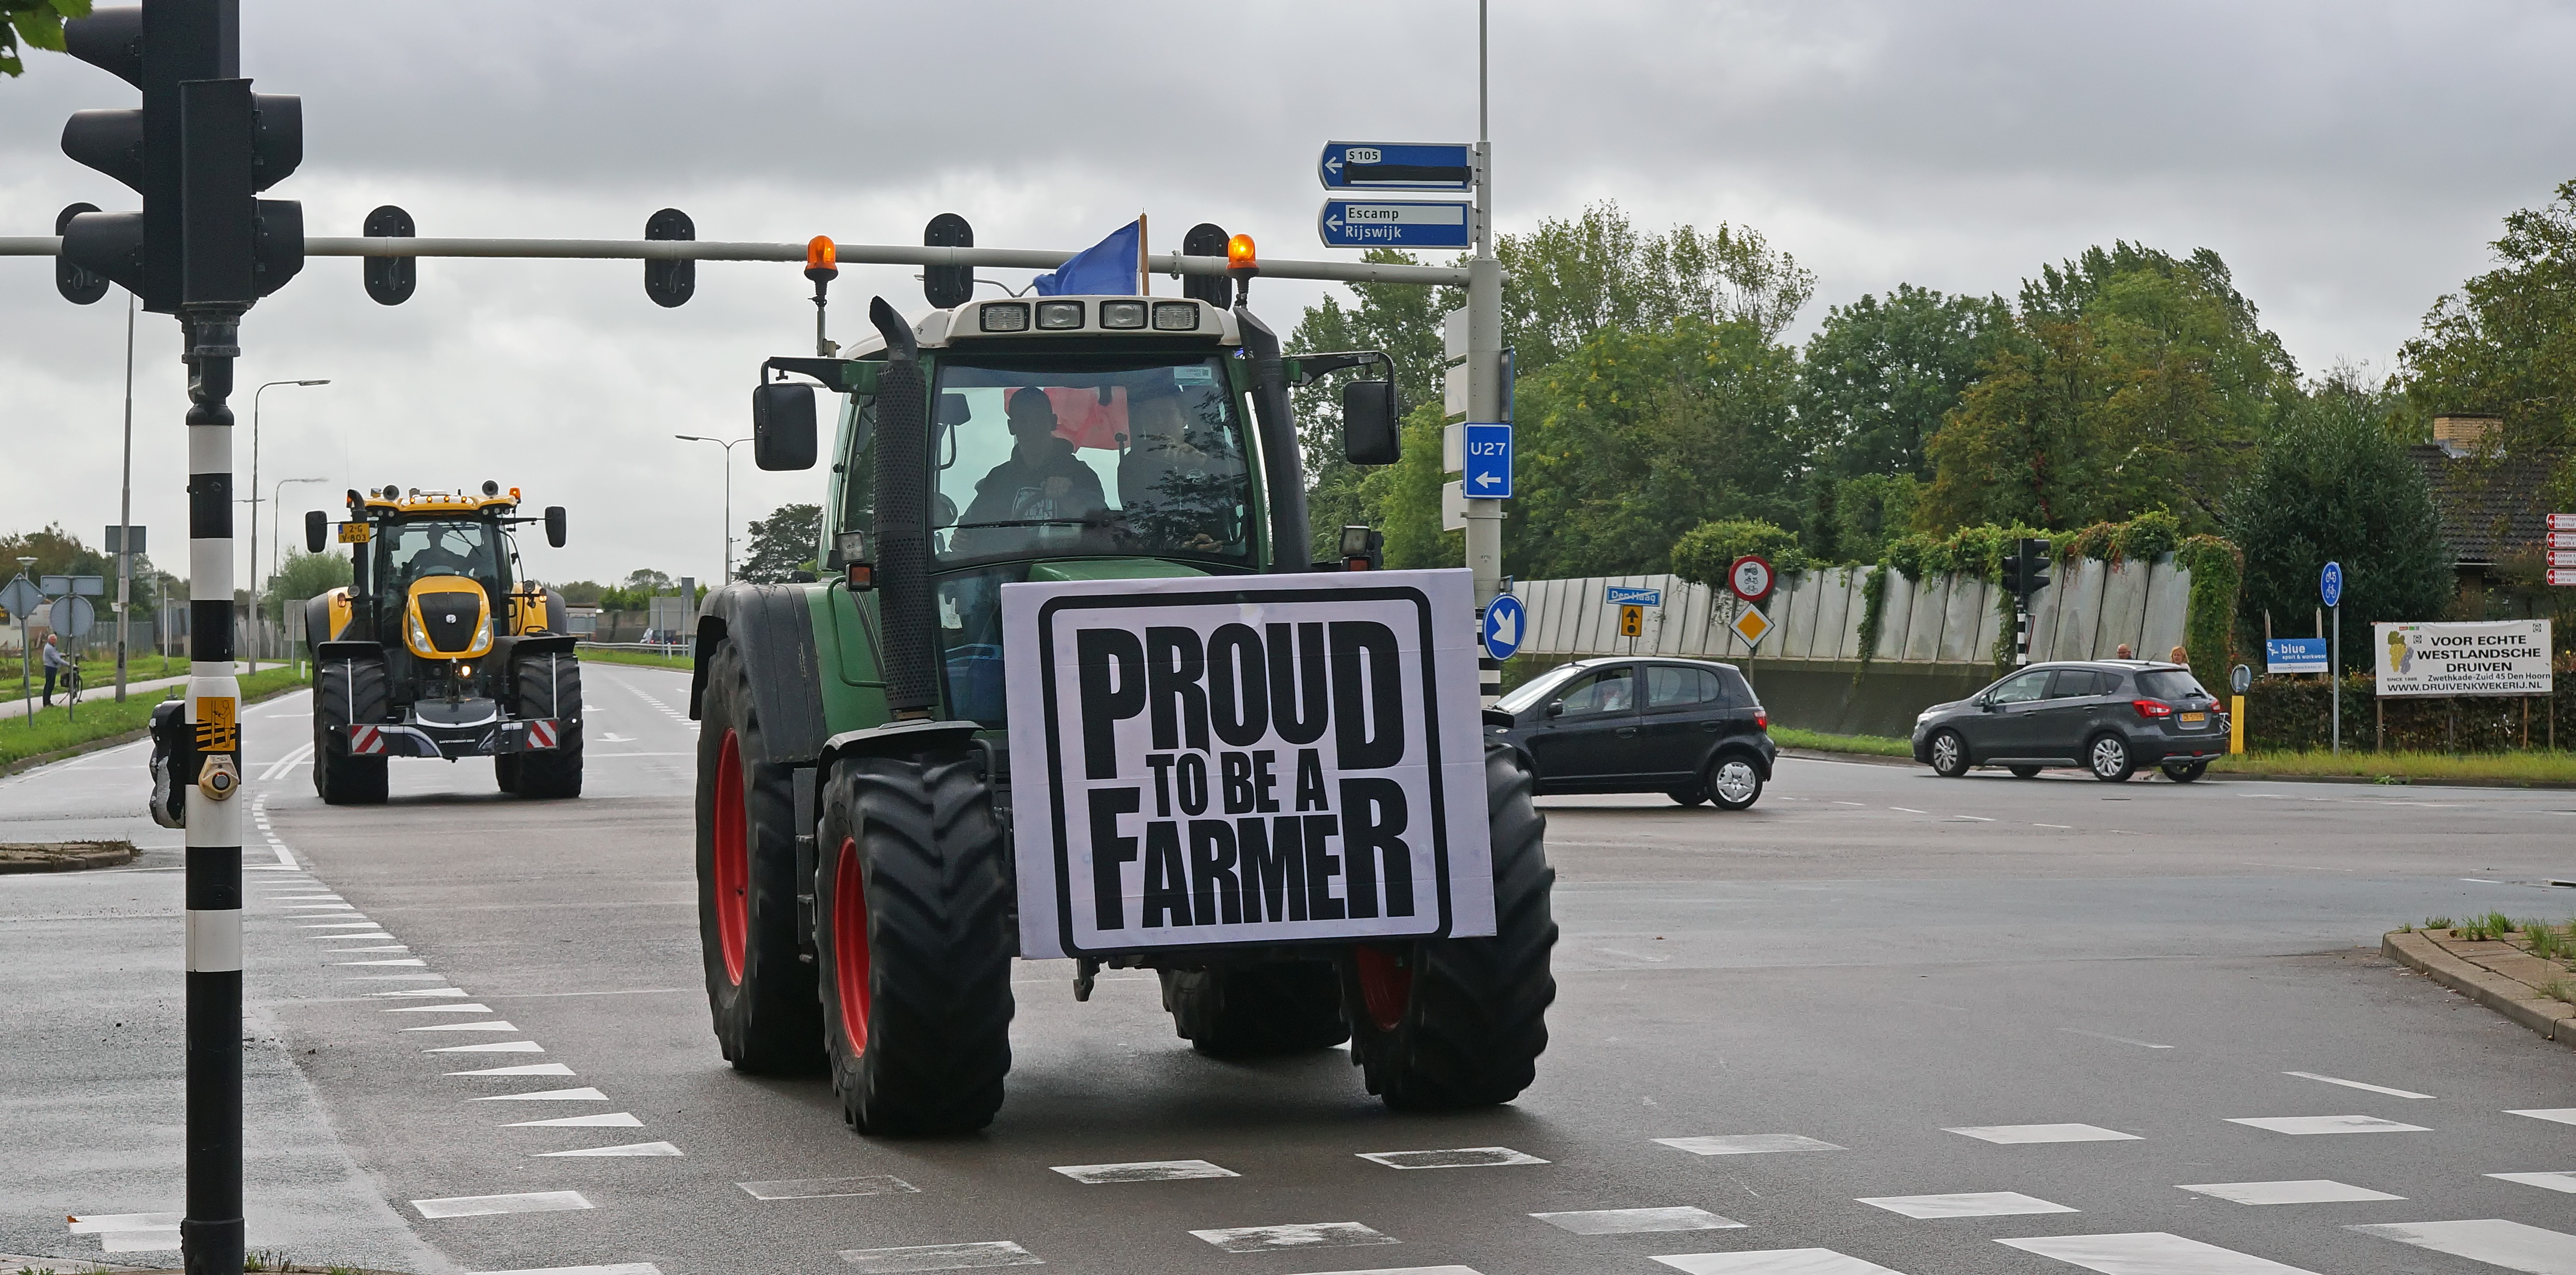 dutch farmers protests wikipedia